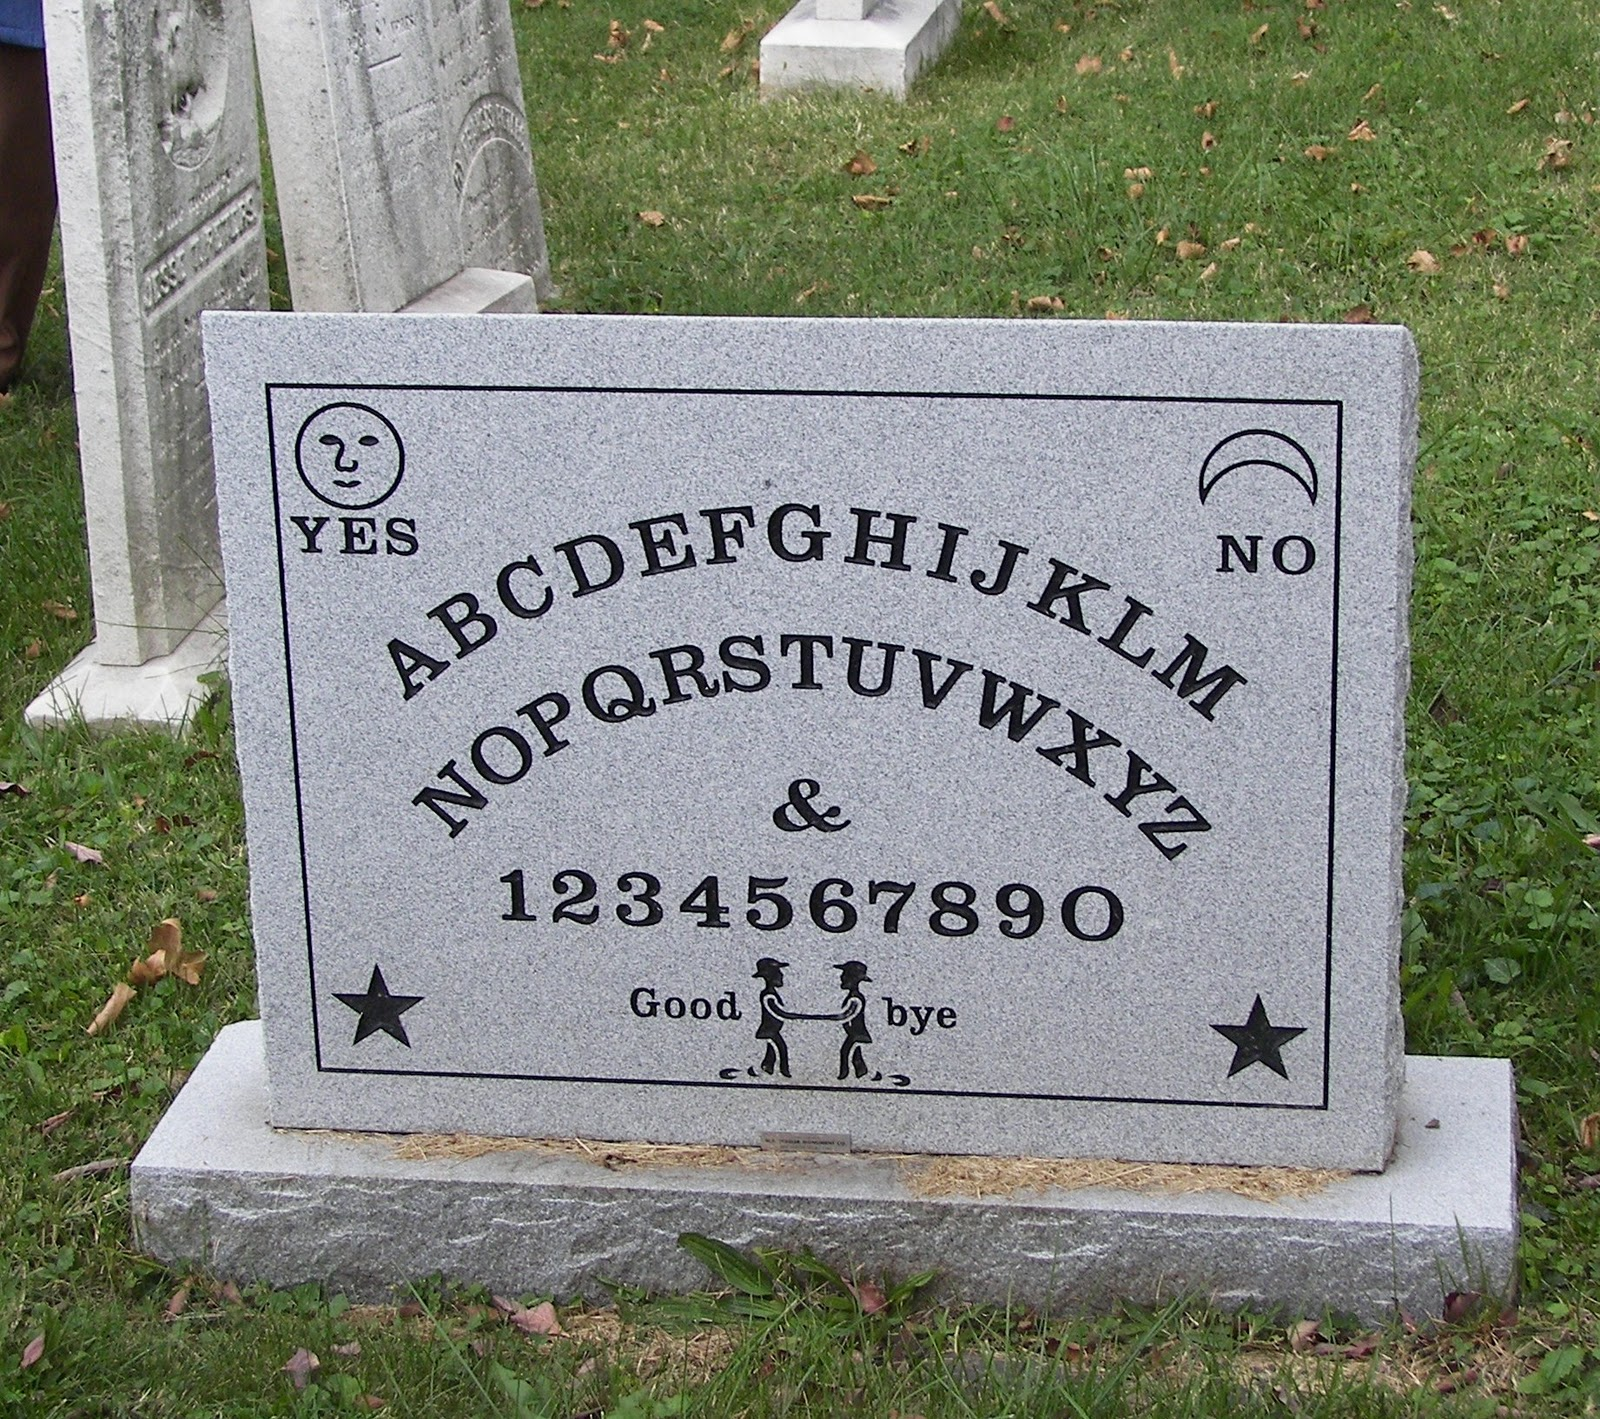 Friday Funny Ouija Tombstone Adventures in